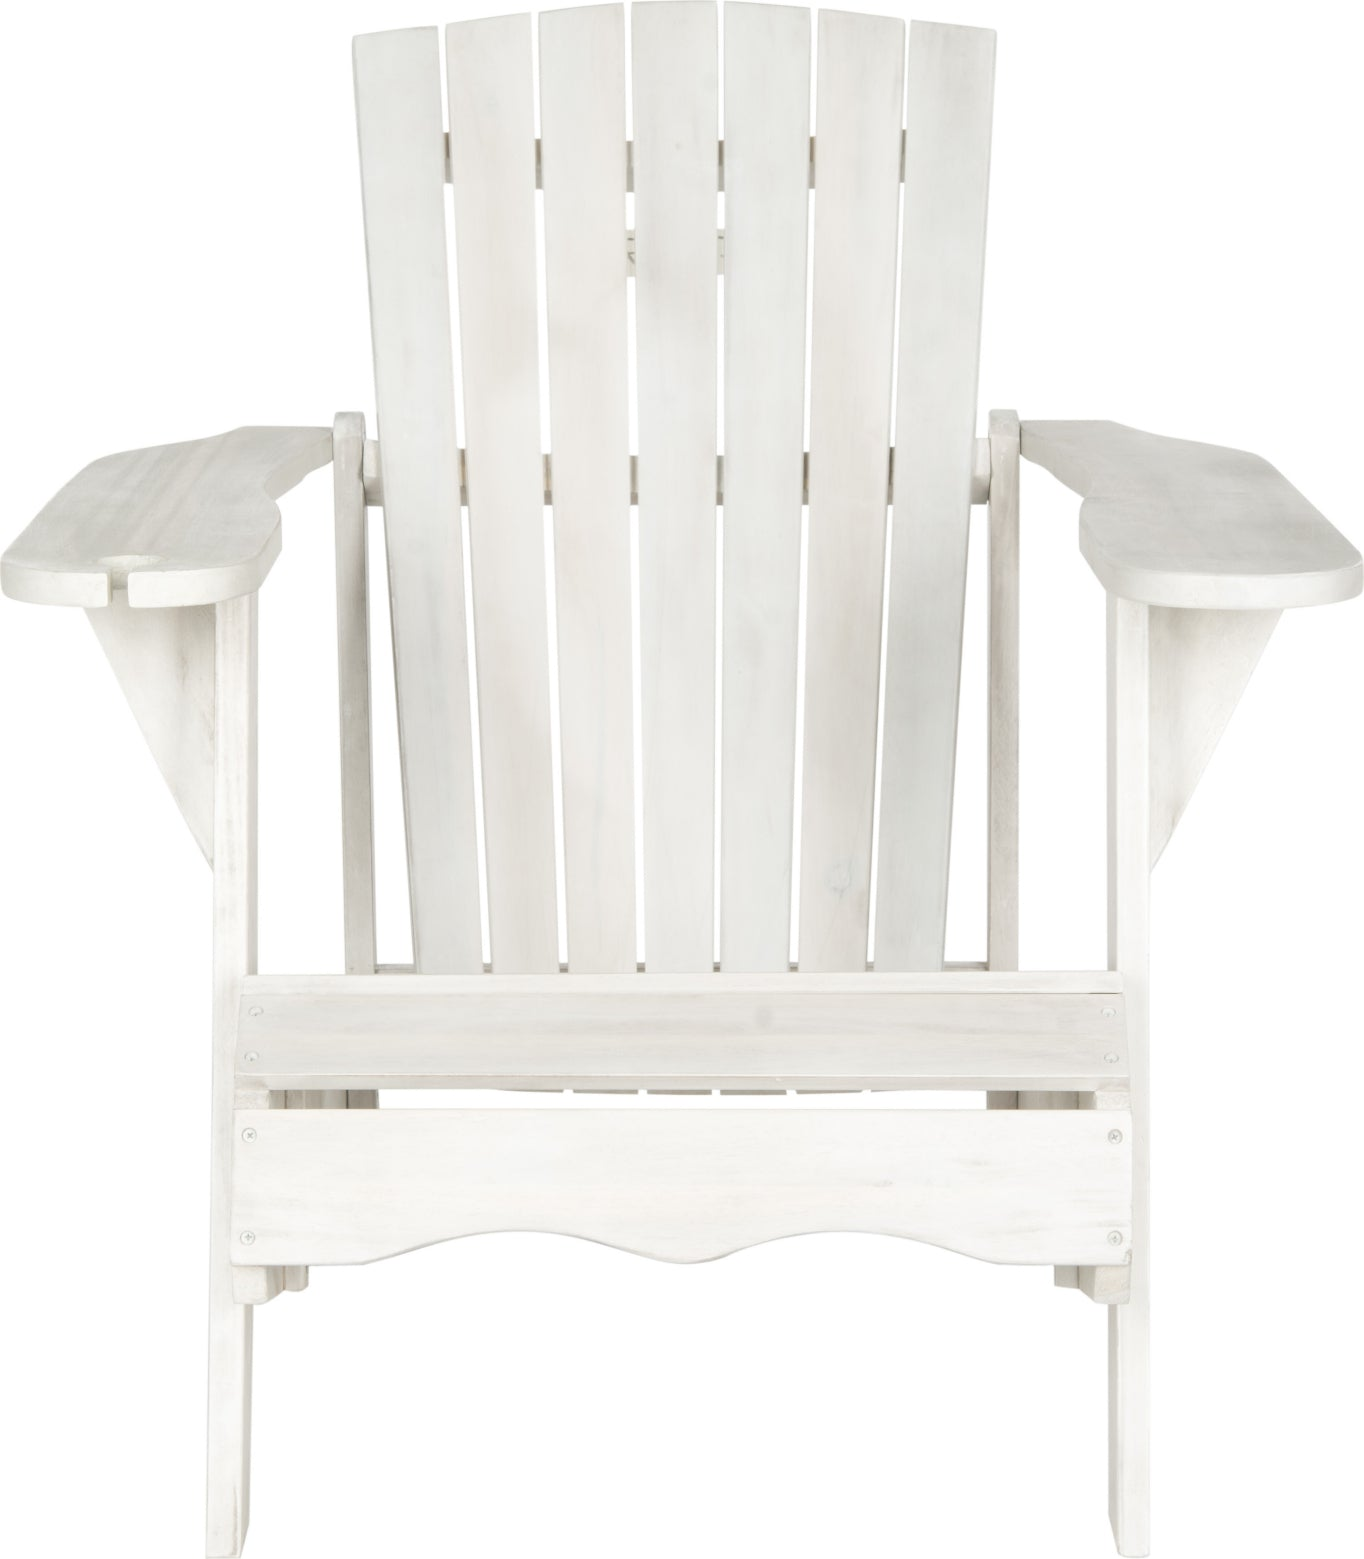 Safavieh Vista Wine Glass Holder Adirondack Chair Antique White Furniture main image